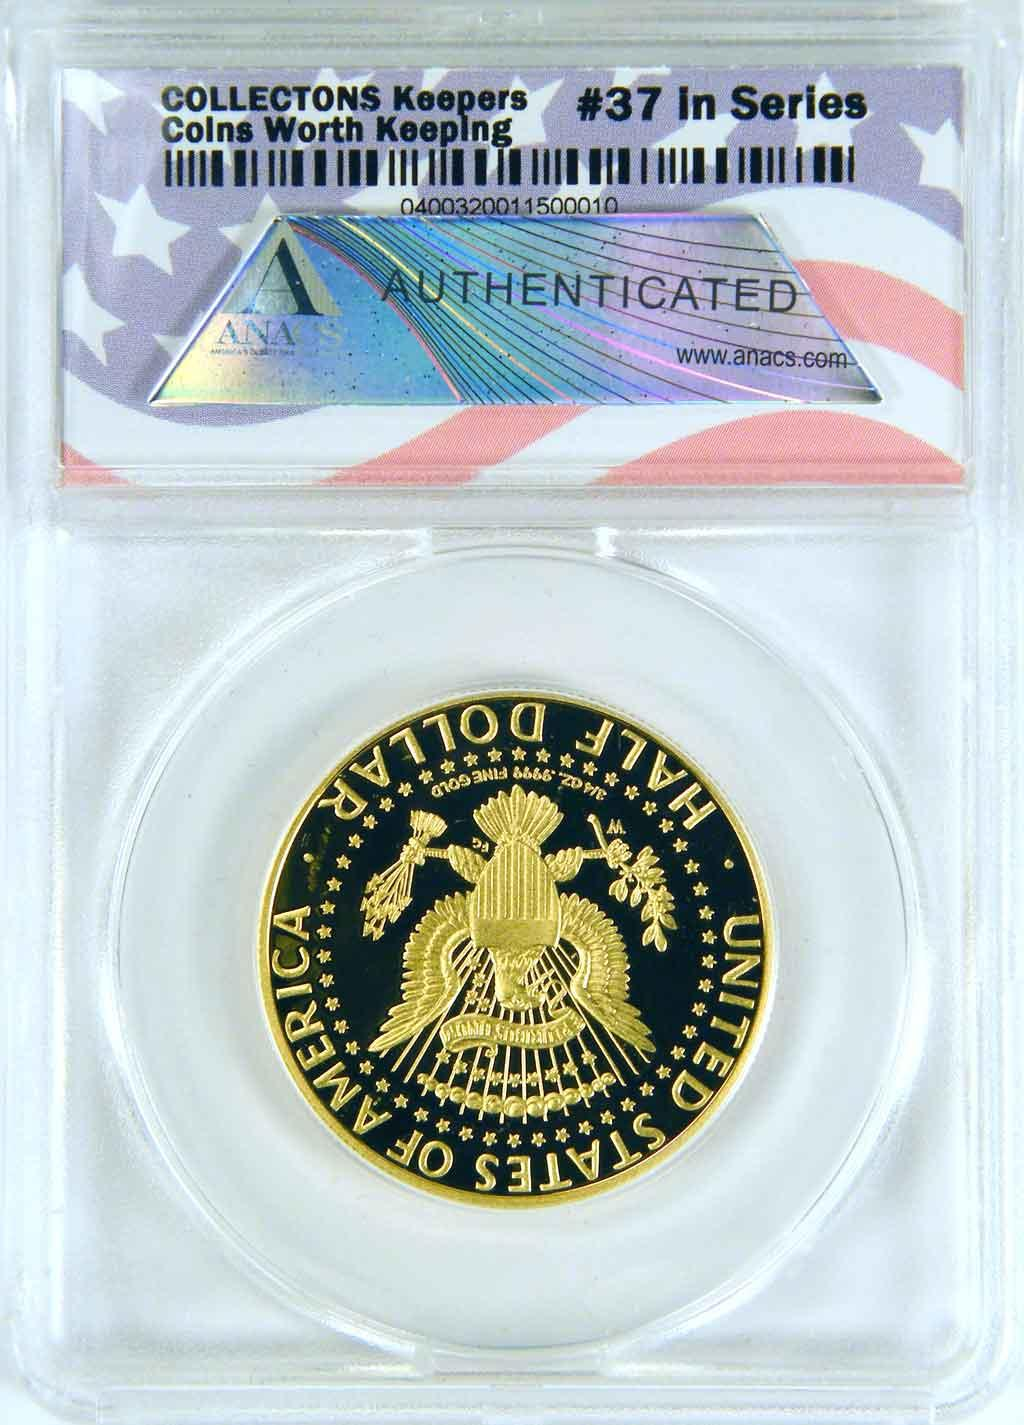 CollecTons Keepers #37: 2014-W Kennedy Half Dollar GOLD Coin Certified in Exclusive ANACS GEM Proof Holder